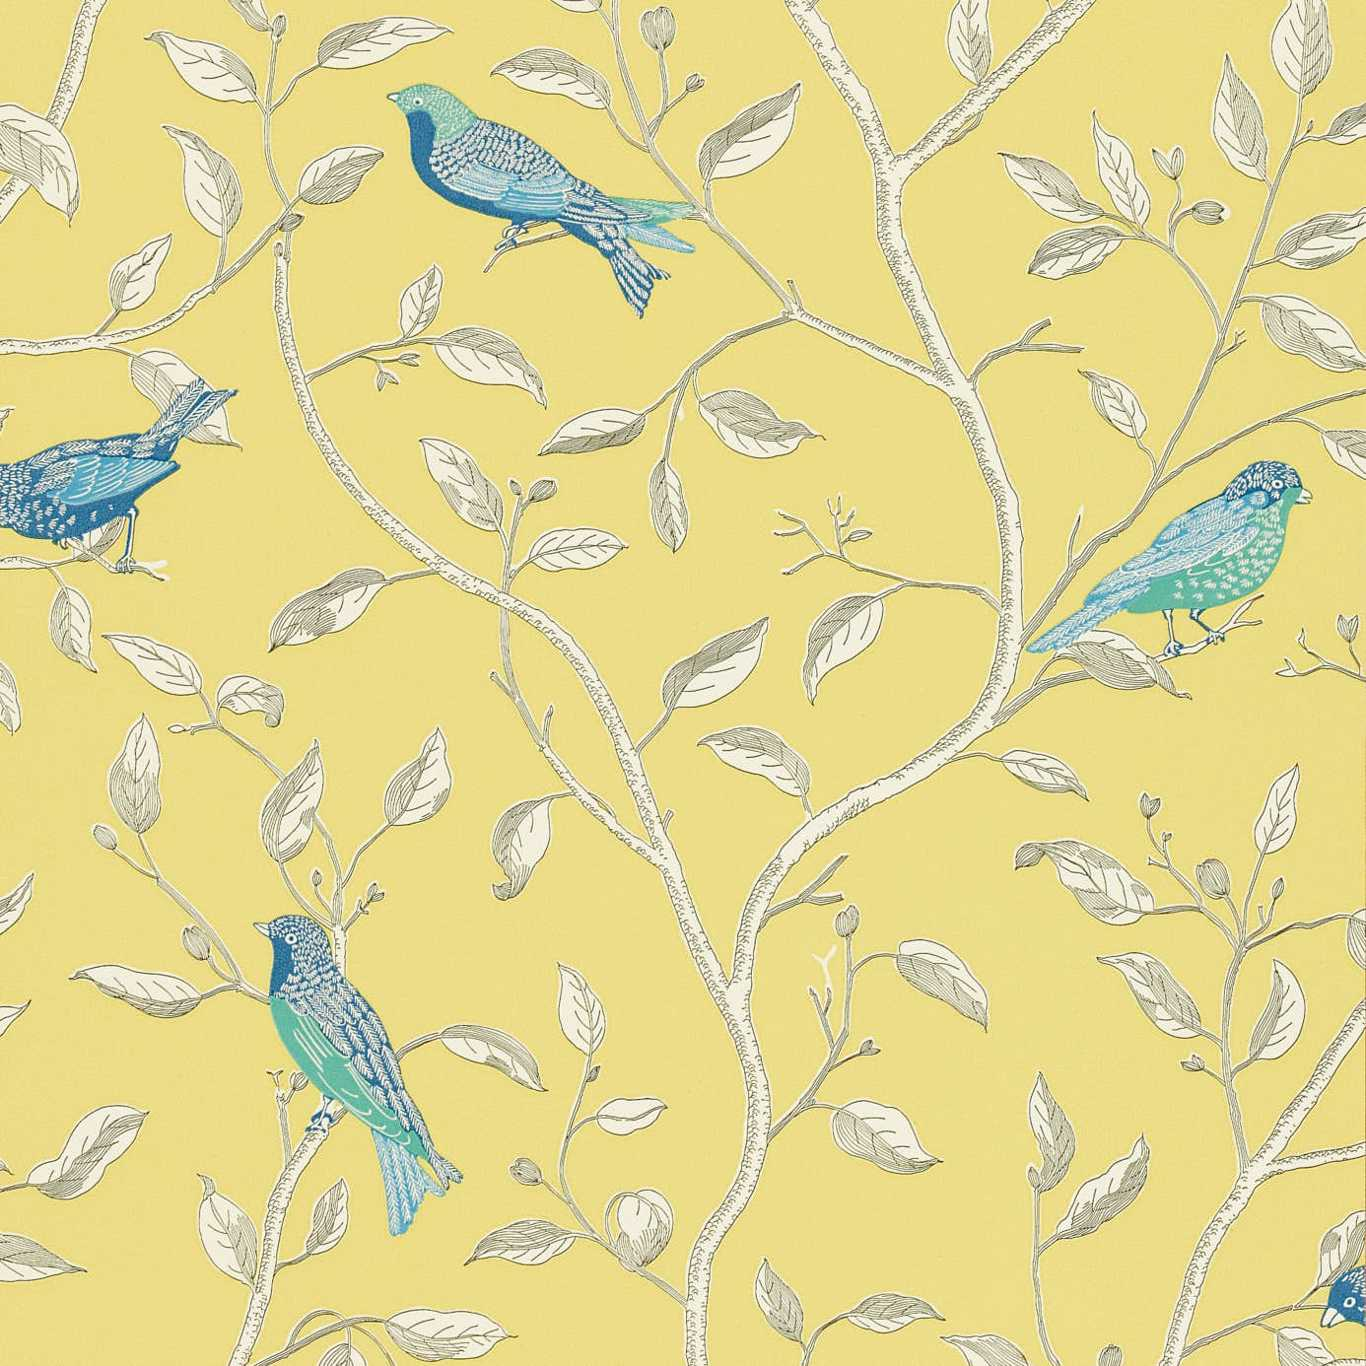 Finches by SAN